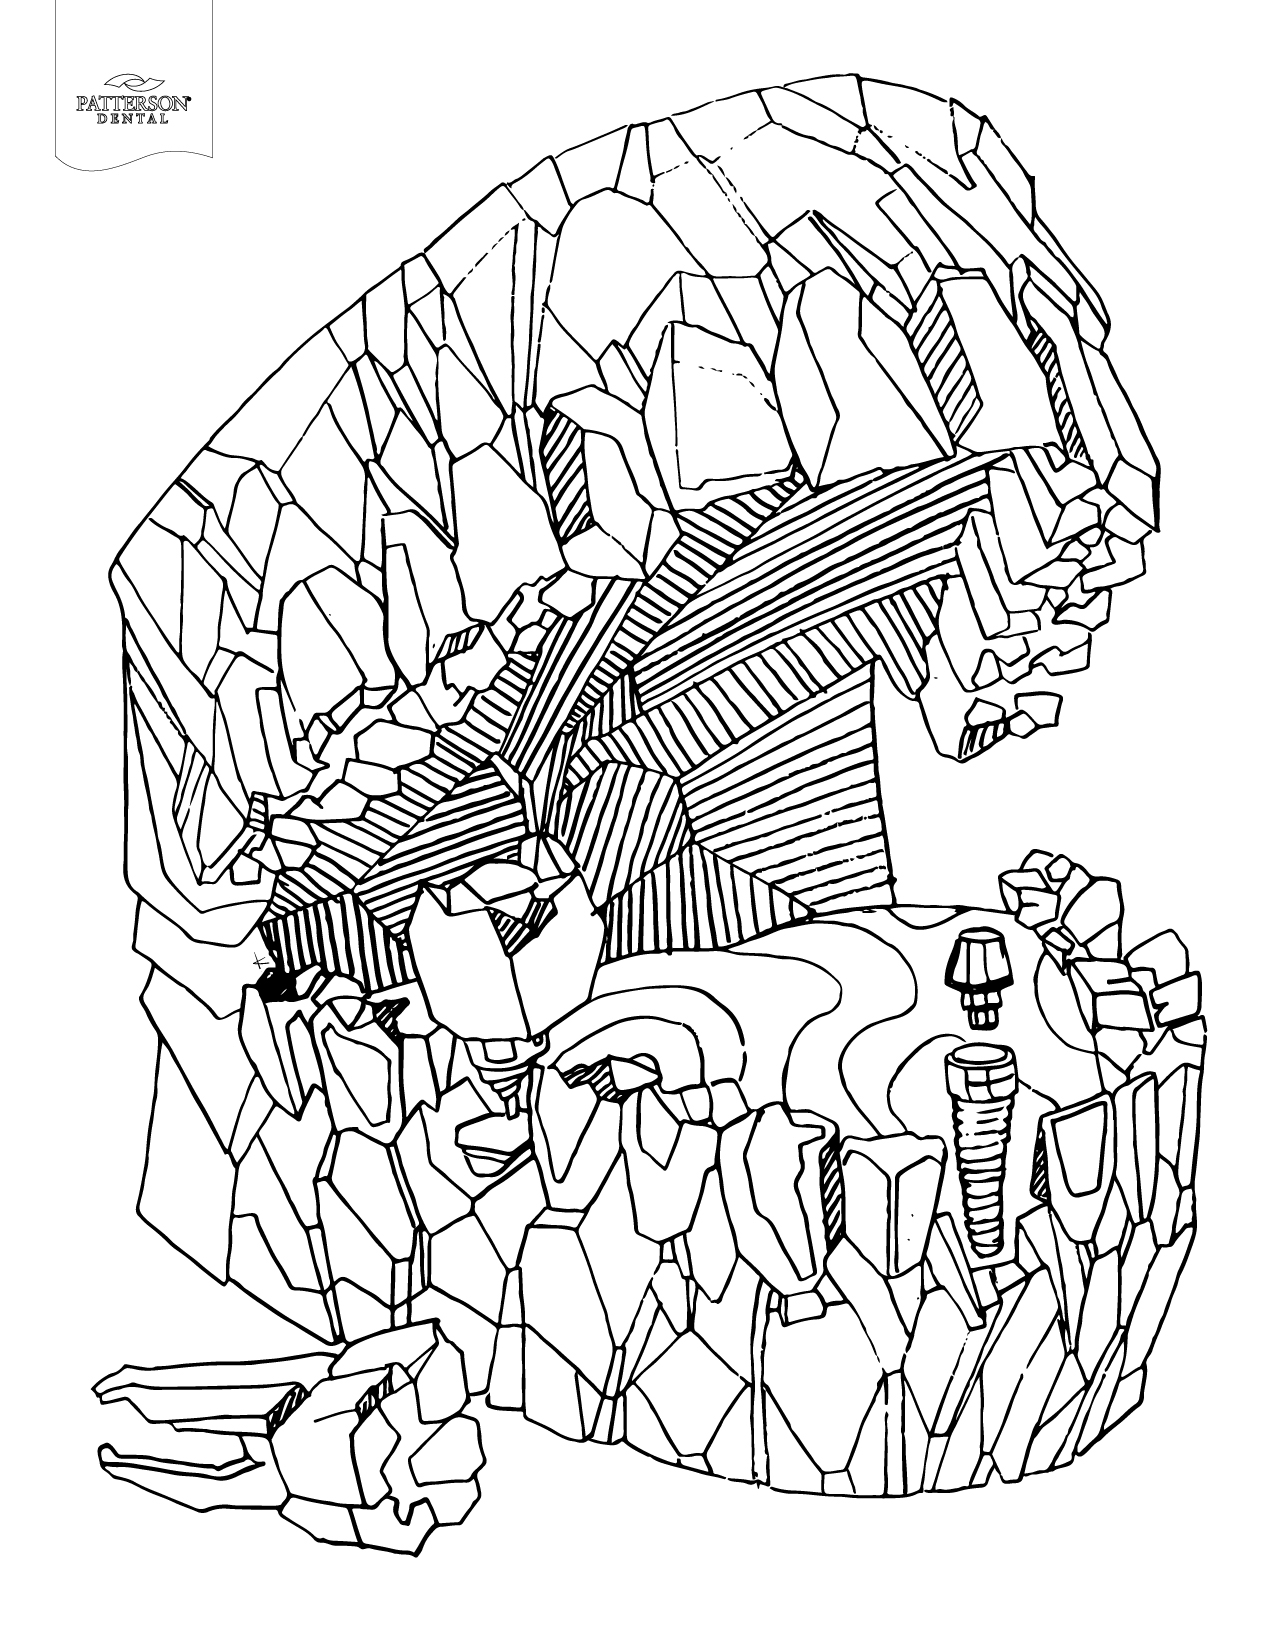 Jaw Carved from Rock coloring page from Patterson Dental